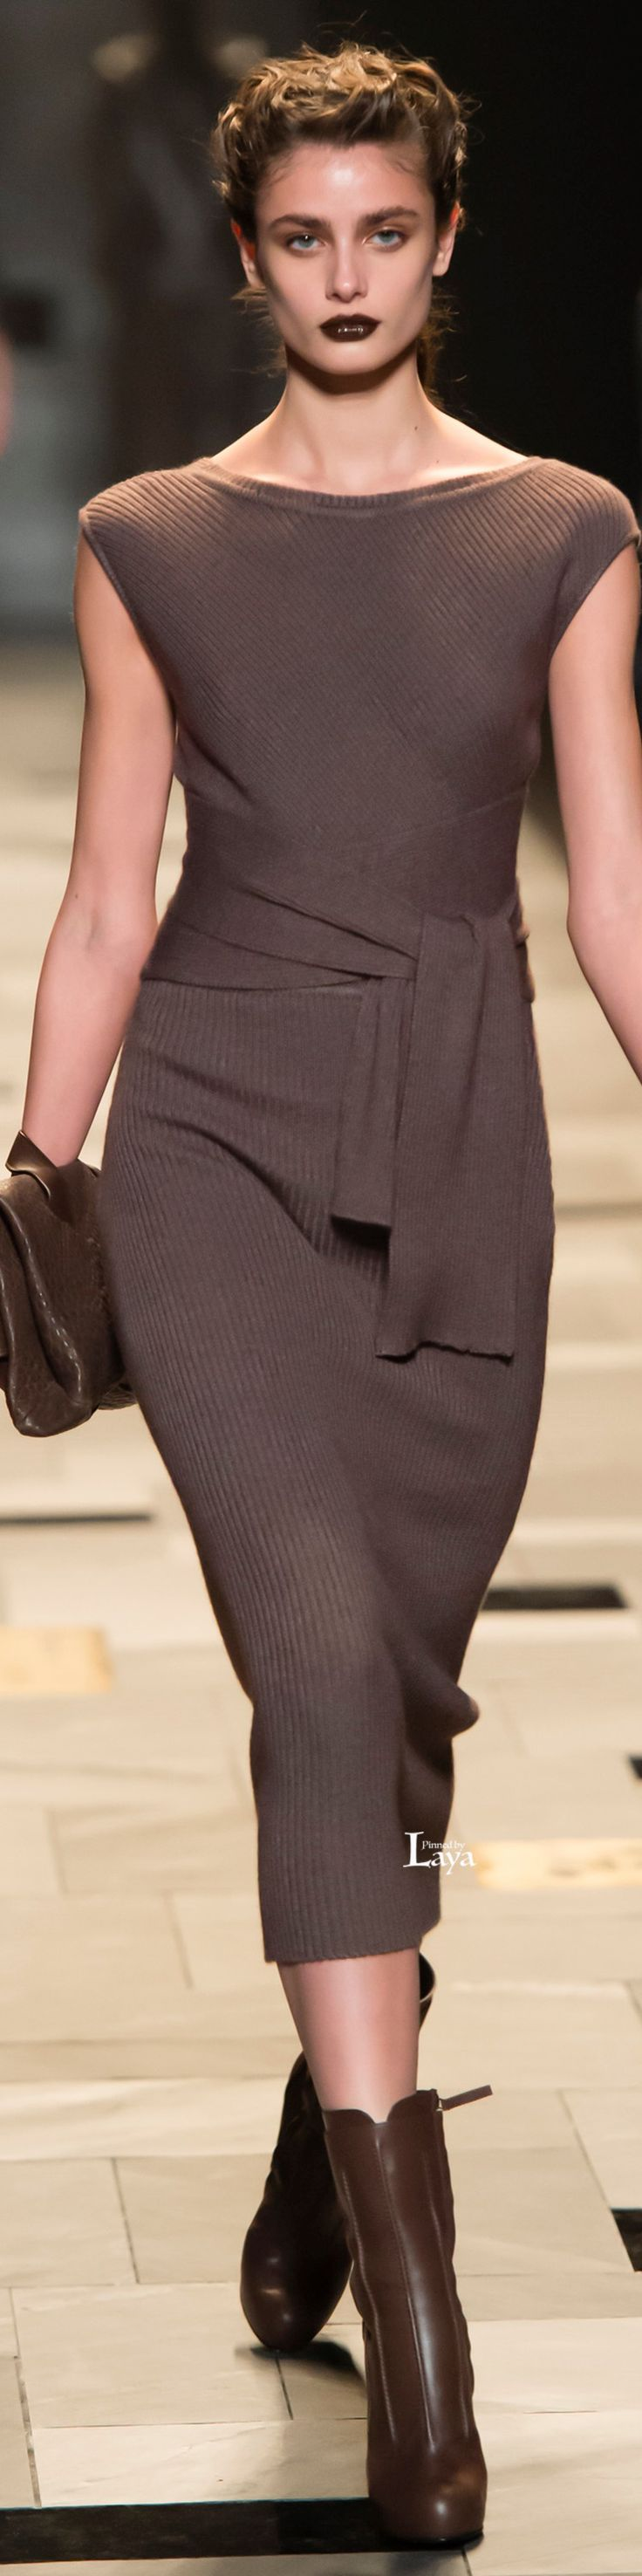 Trussardi Fall Winter 2015-16 RTW